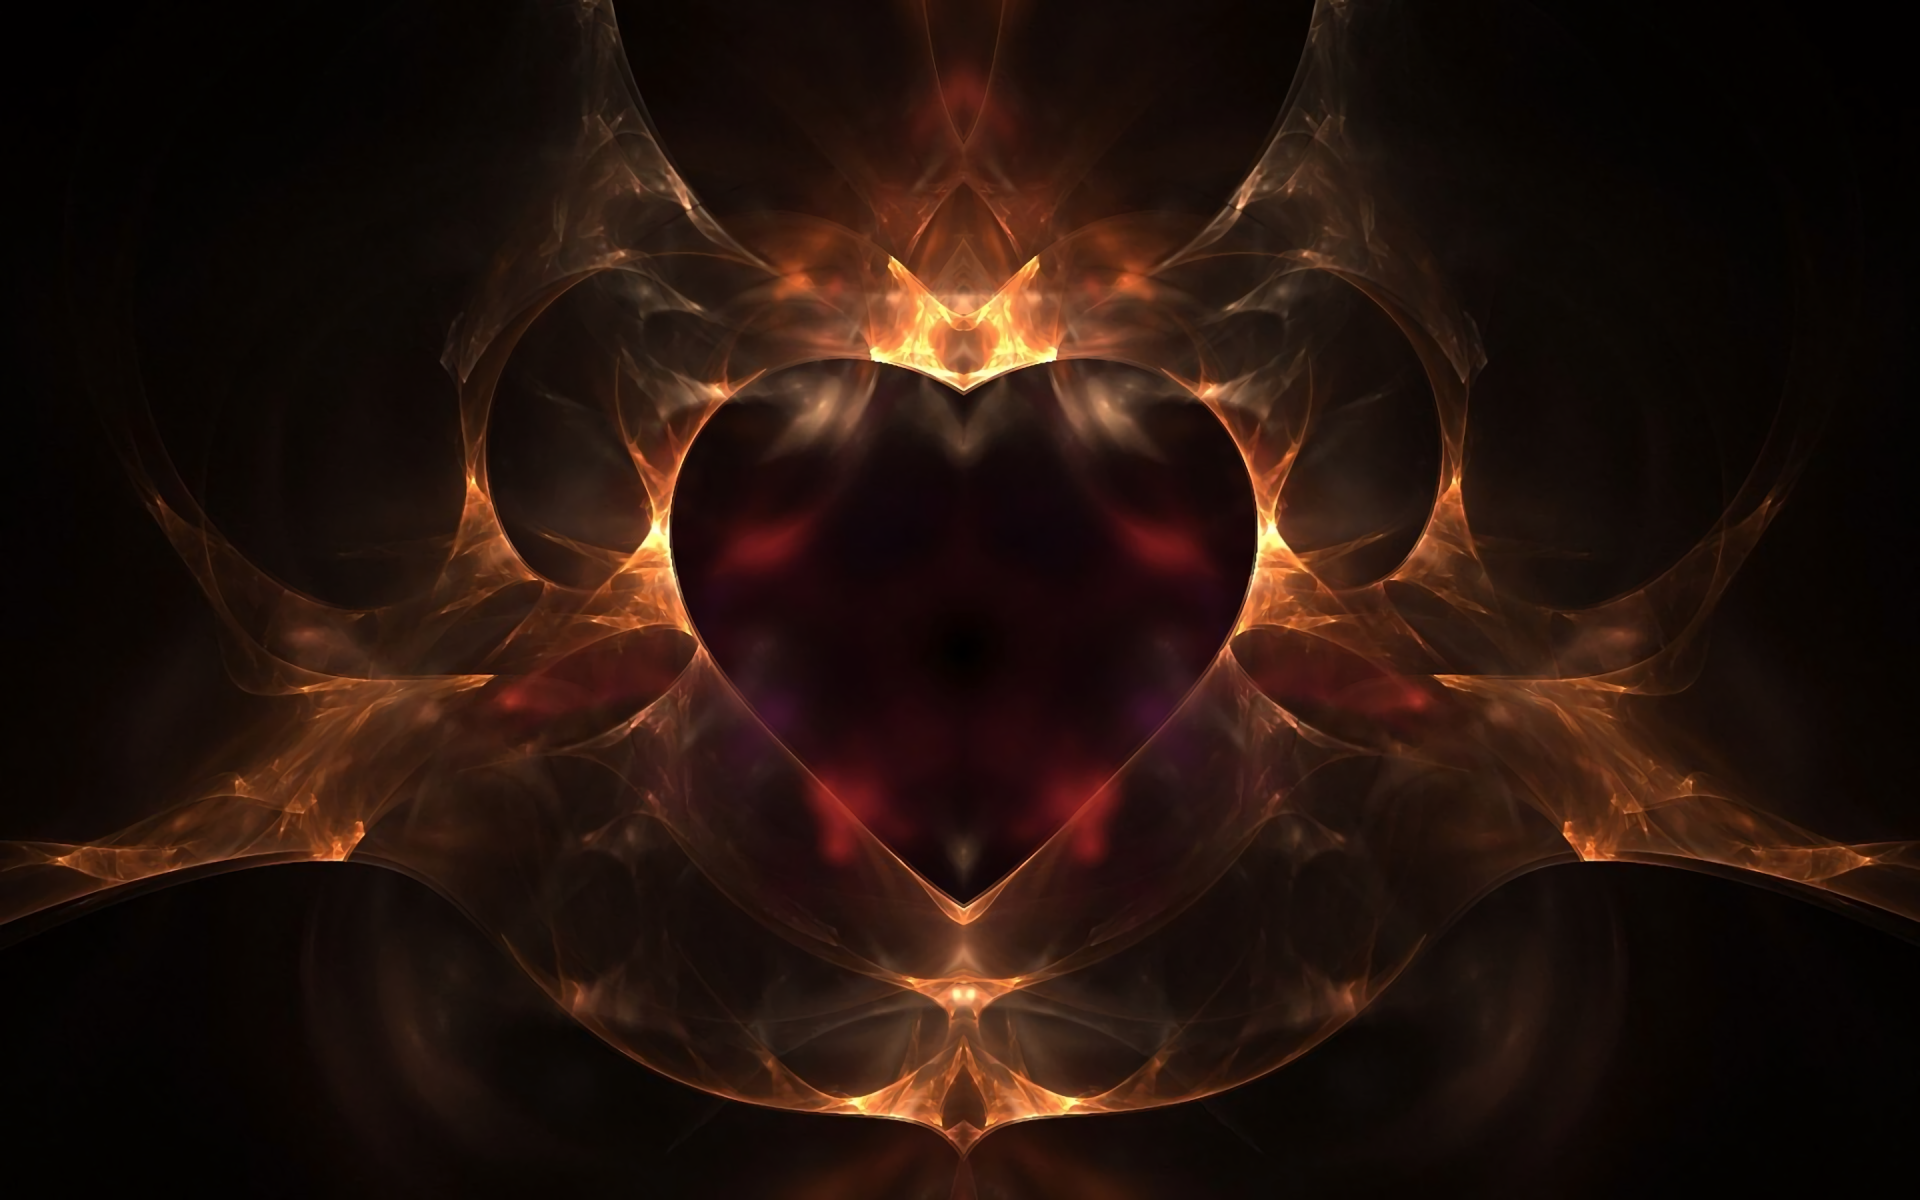 Abstract - Fractal  Abstract Heart Red Gold Digital Art Artistic Wallpaper